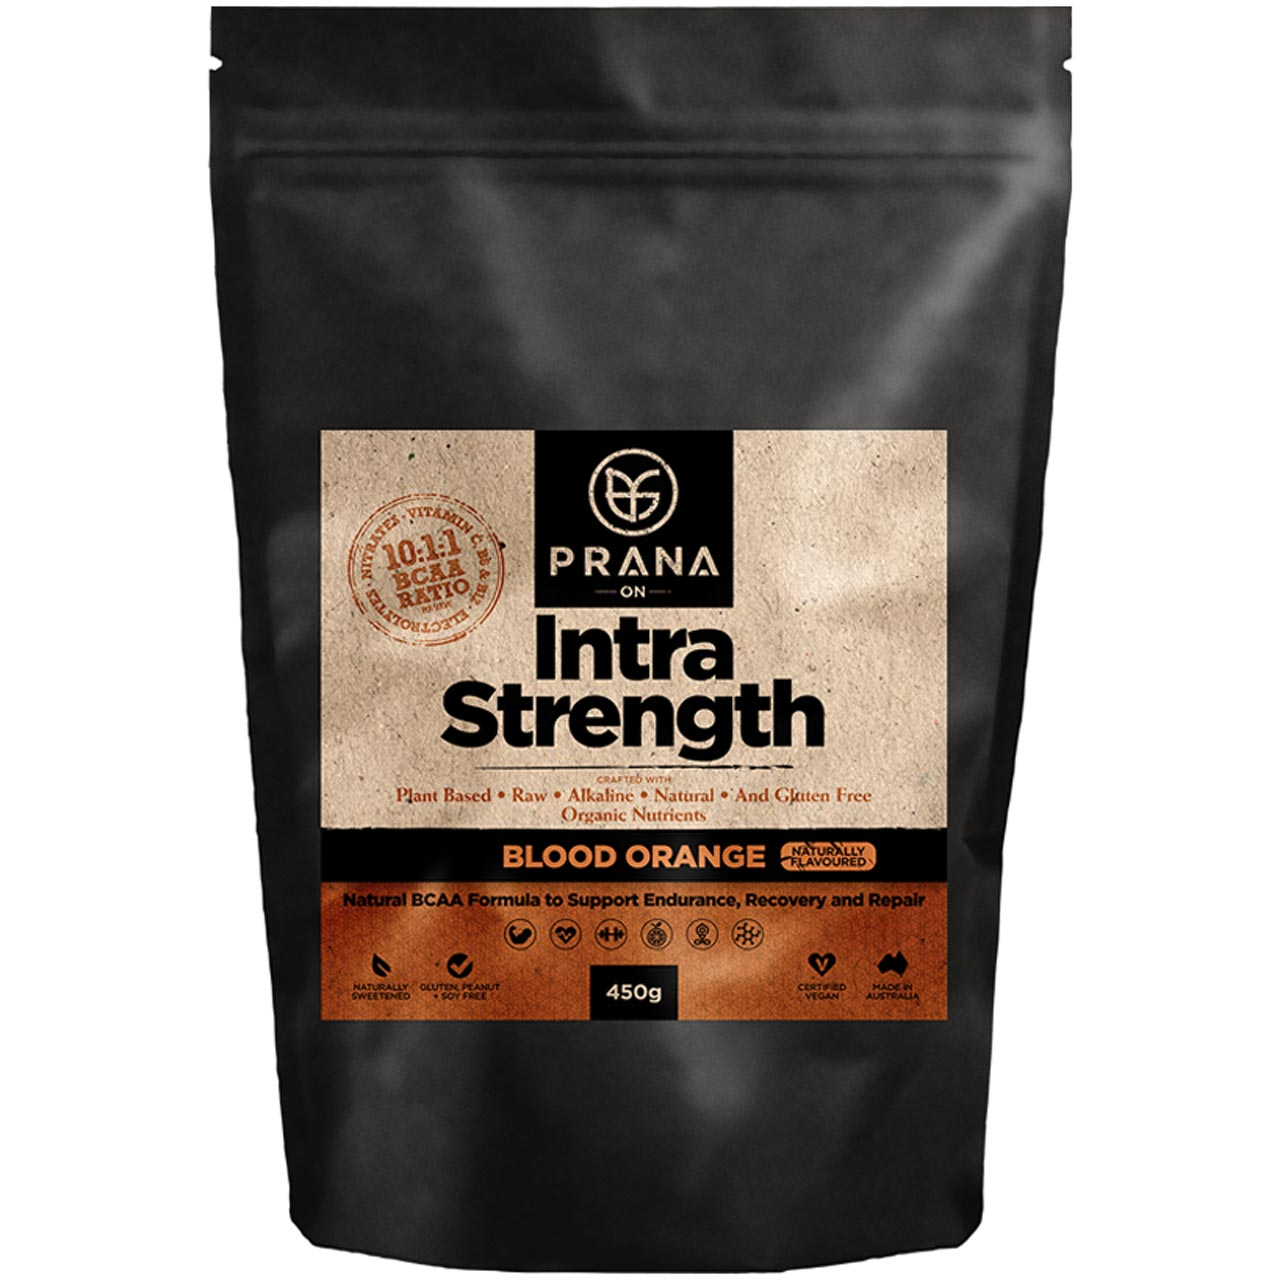 Prana Intra Strength - Blood Orange